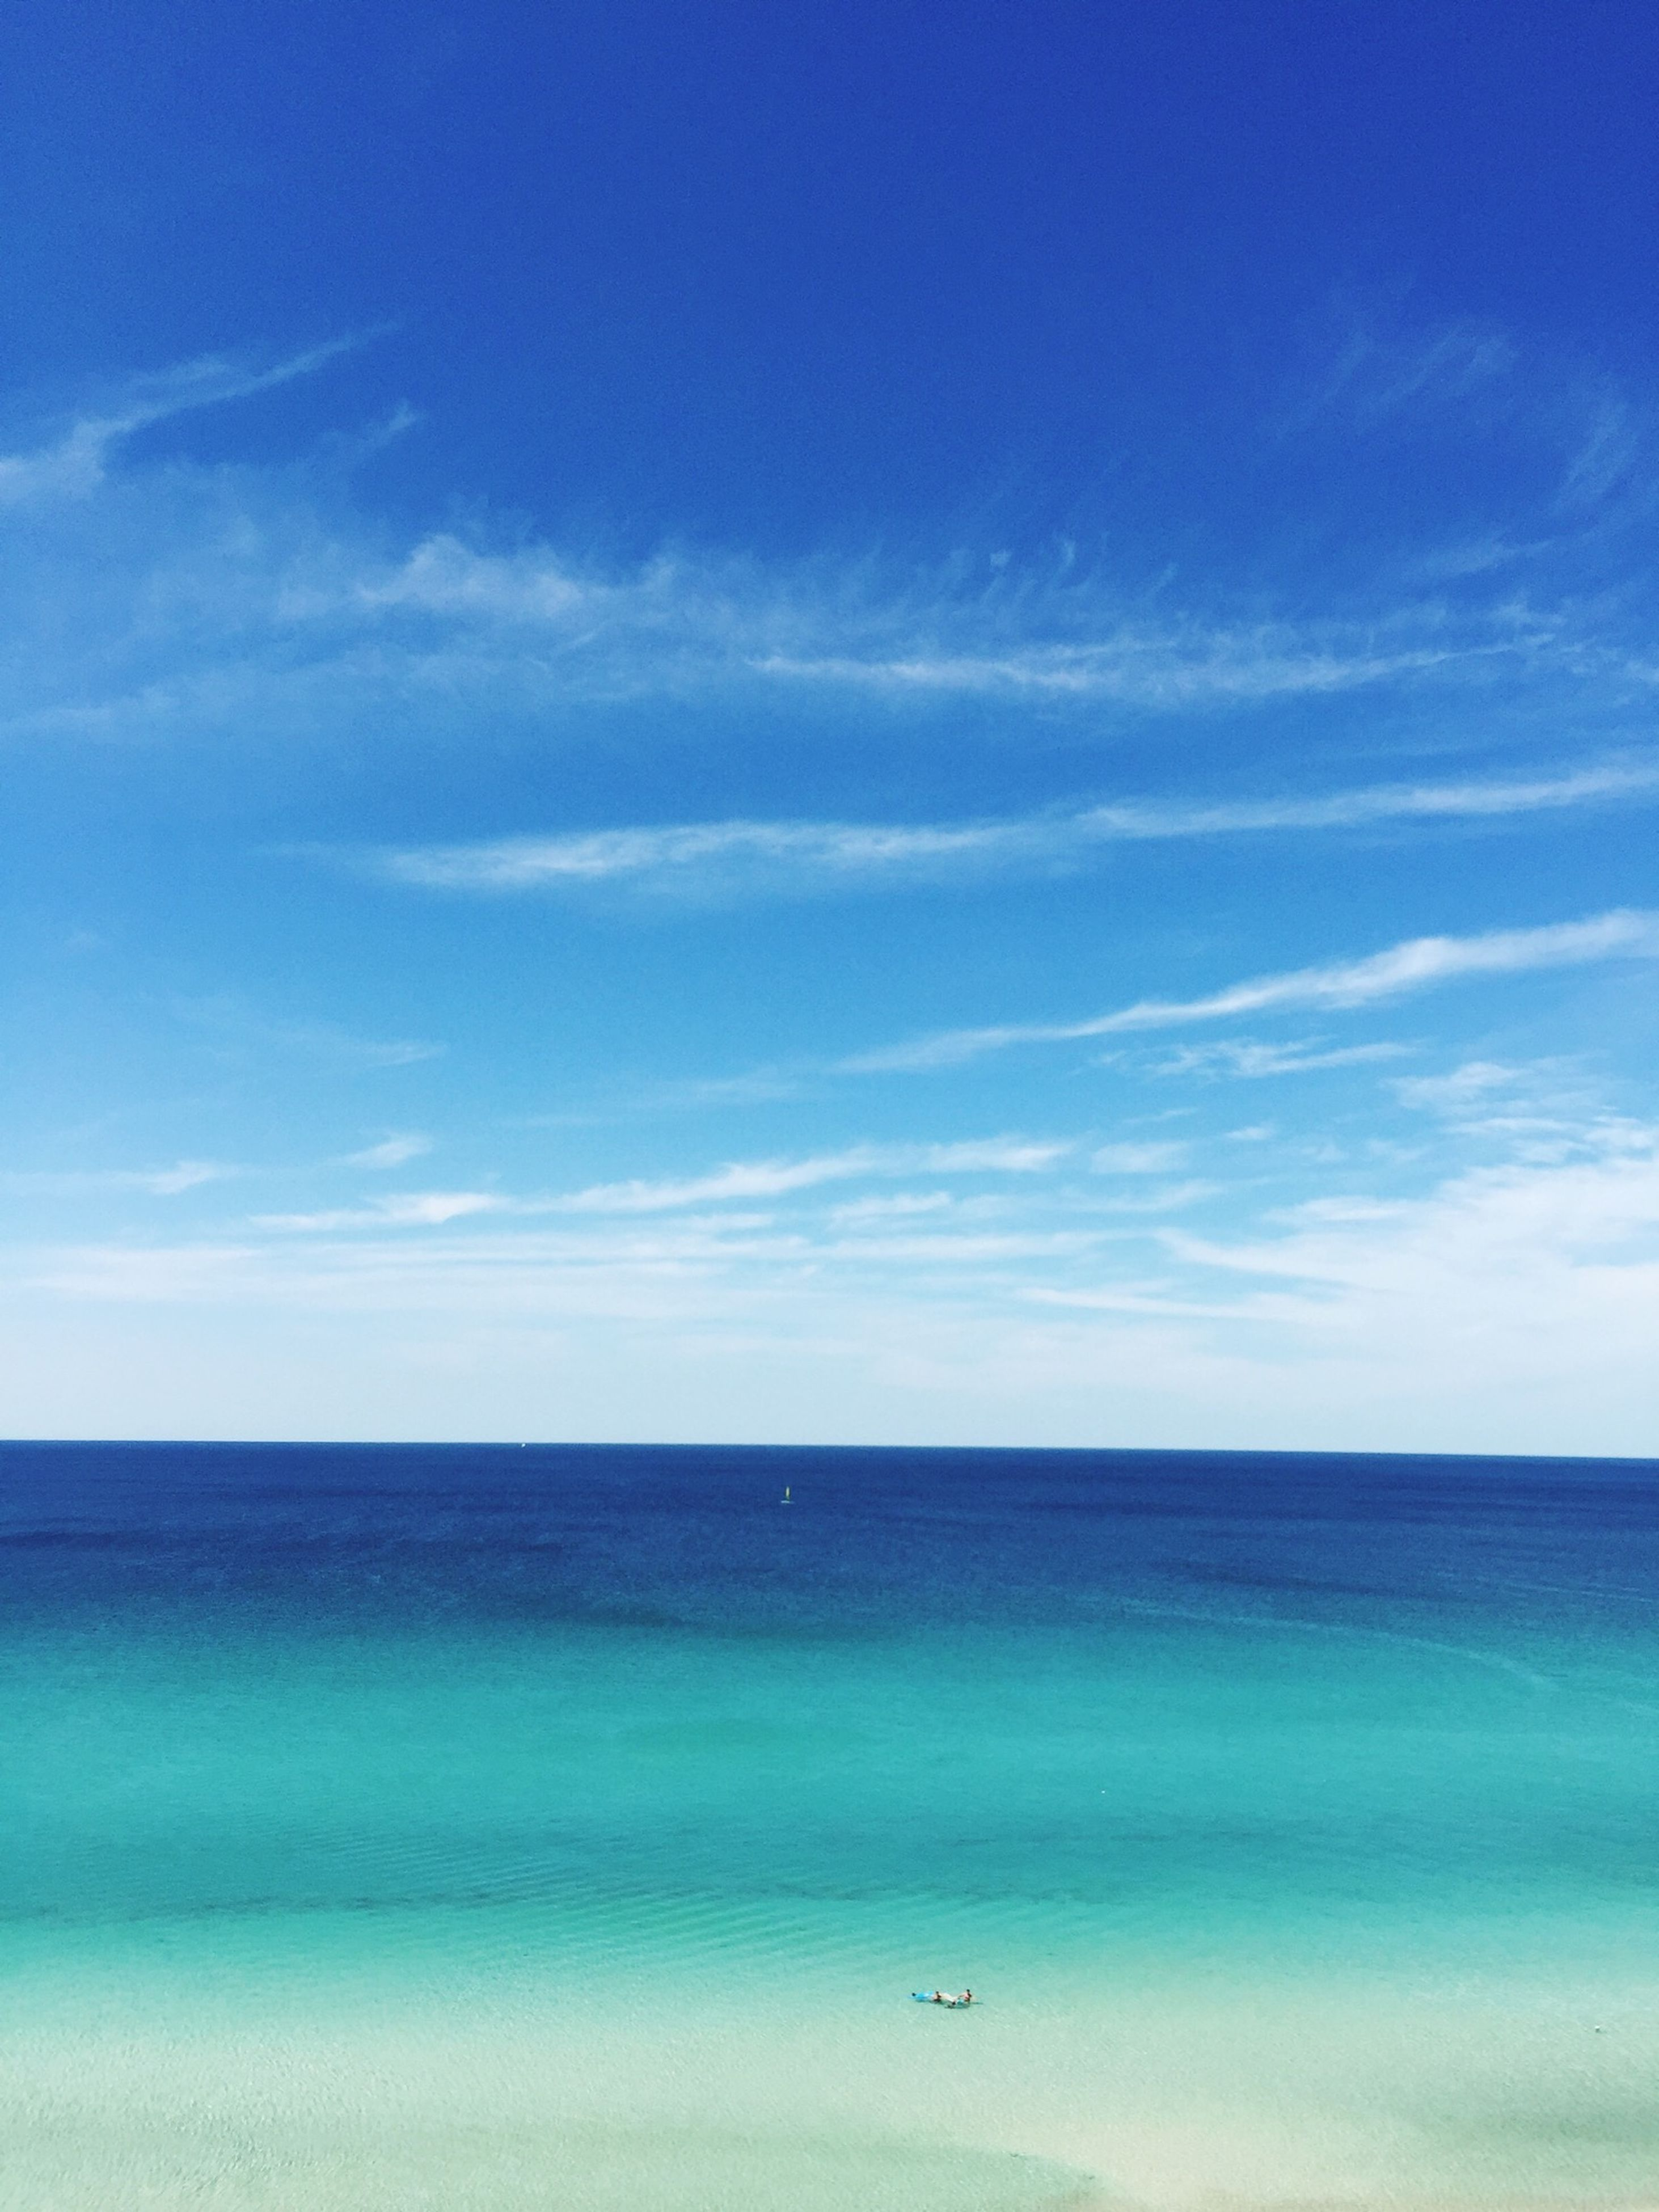 sea, blue, water, tranquil scene, horizon over water, sky, tranquility, scenics, beauty in nature, waterfront, nature, idyllic, cloud - sky, cloud, seascape, beach, outdoors, calm, day, rippled